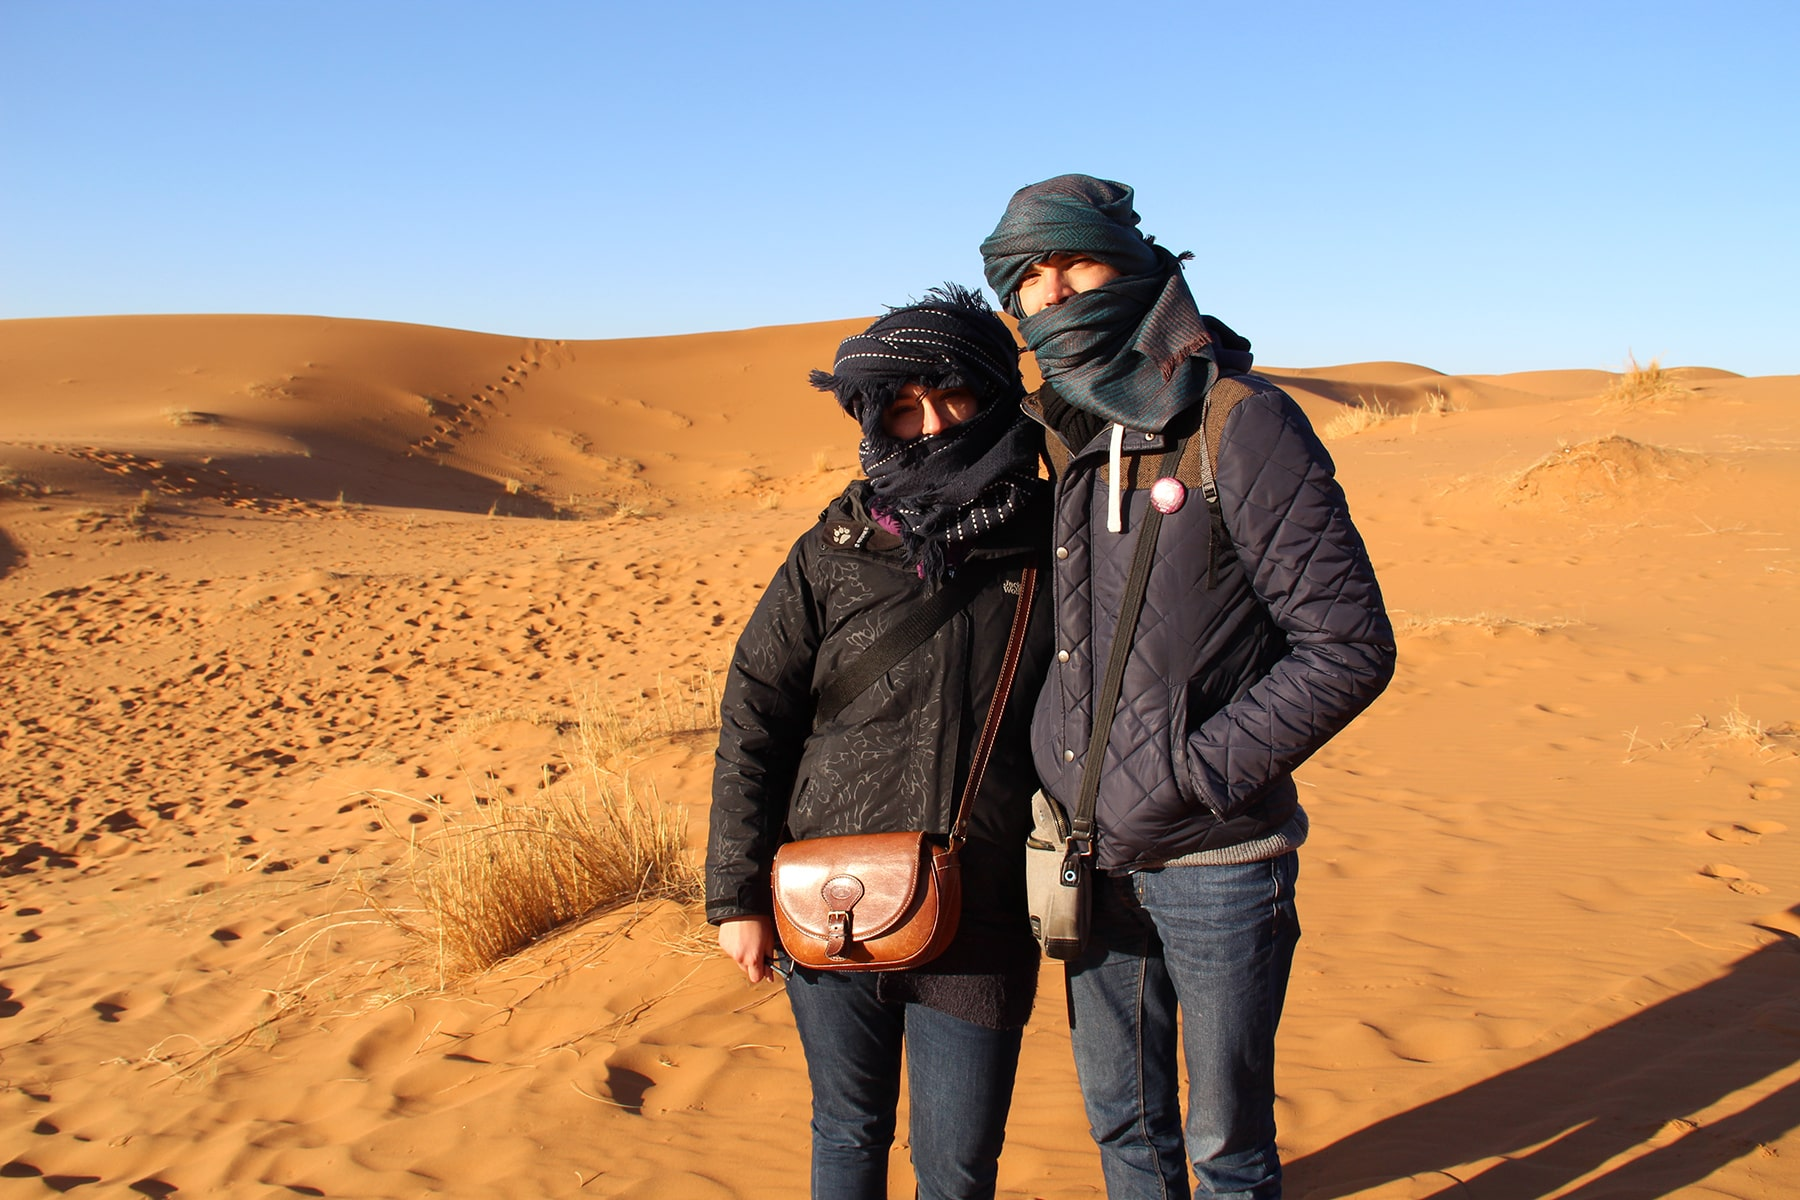 Us in Merzouga, Sahara desert during winter